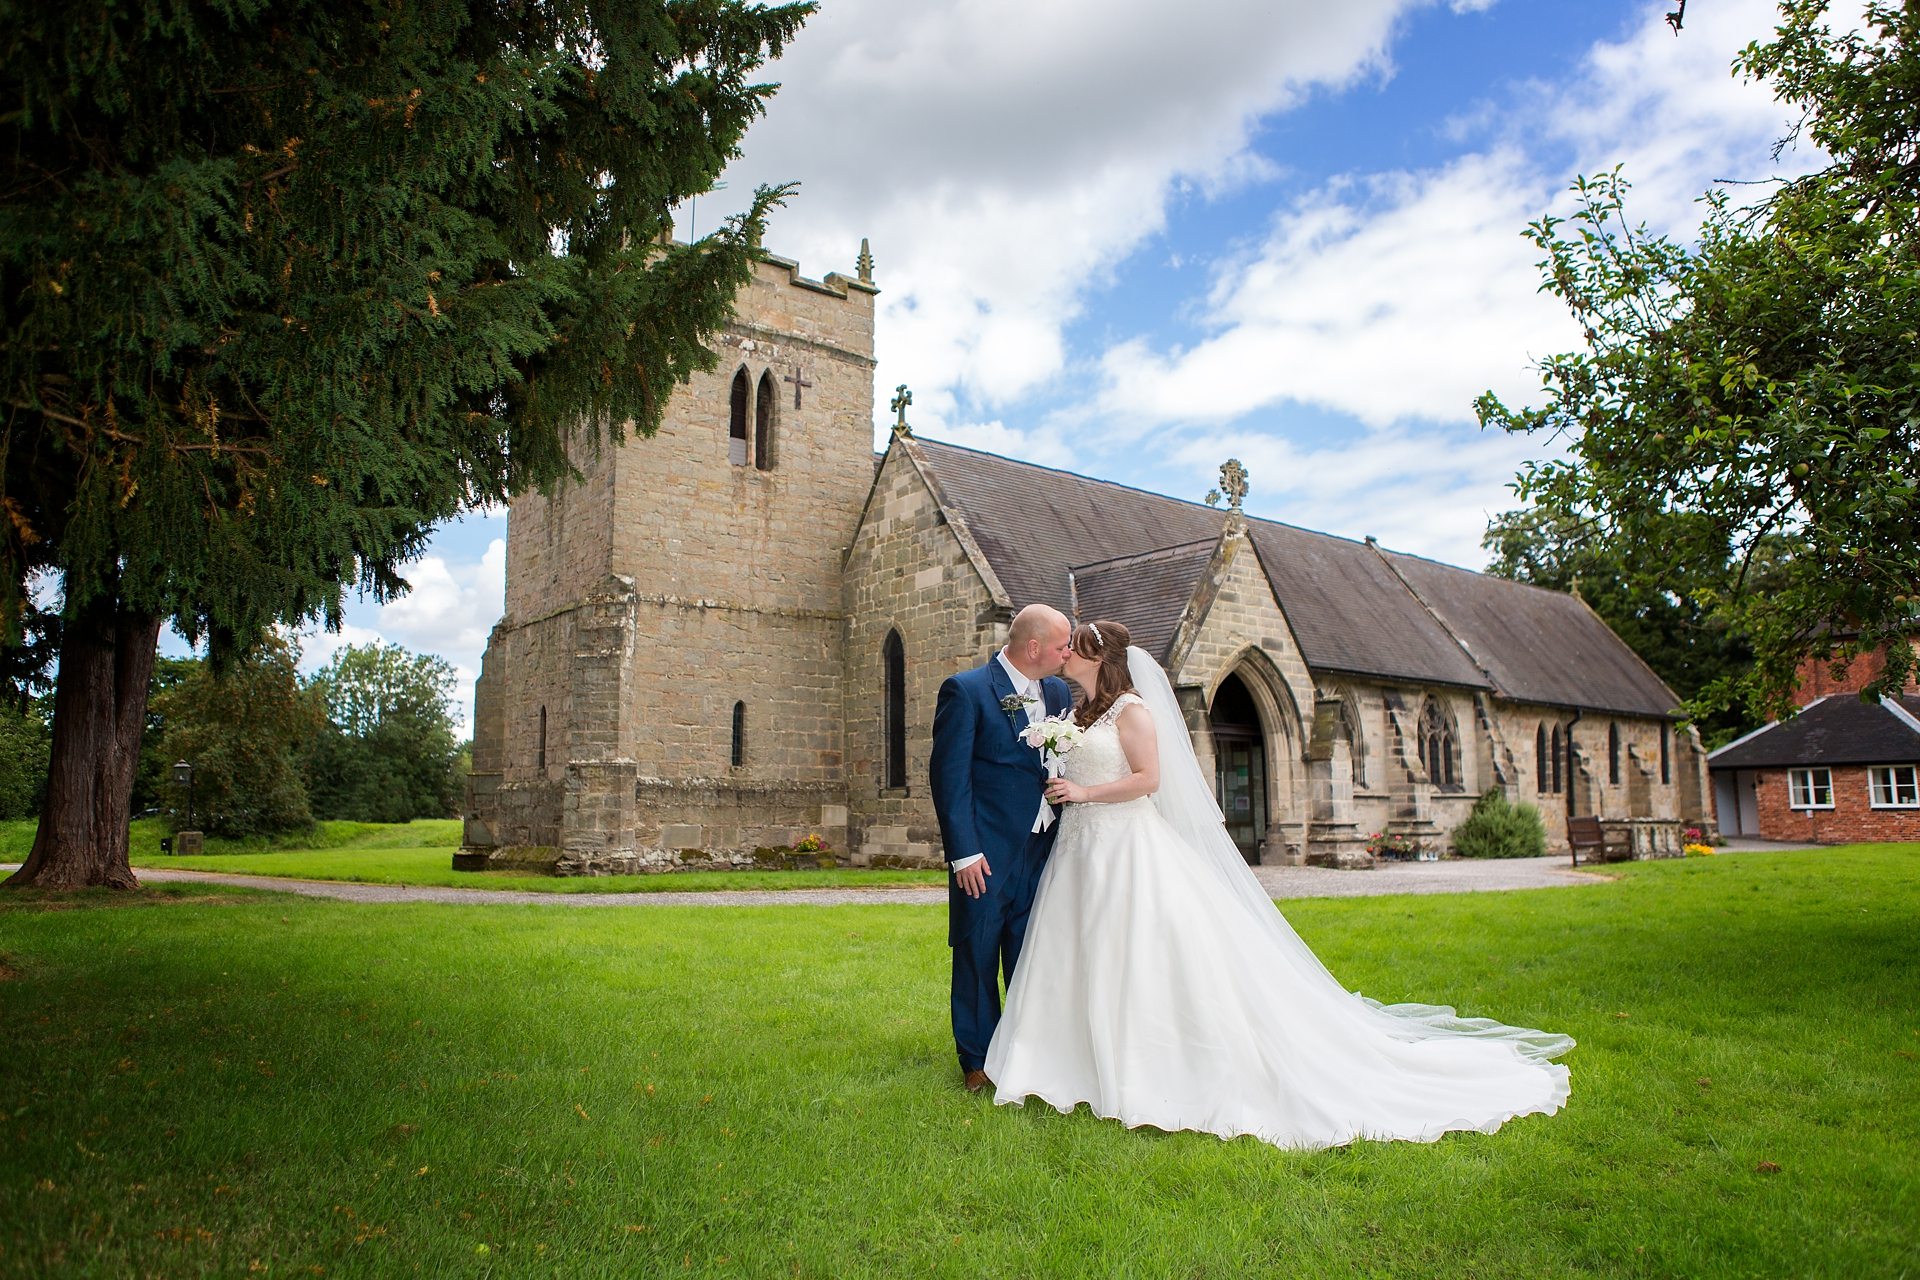 rugeley wedding photographer 6.jpg